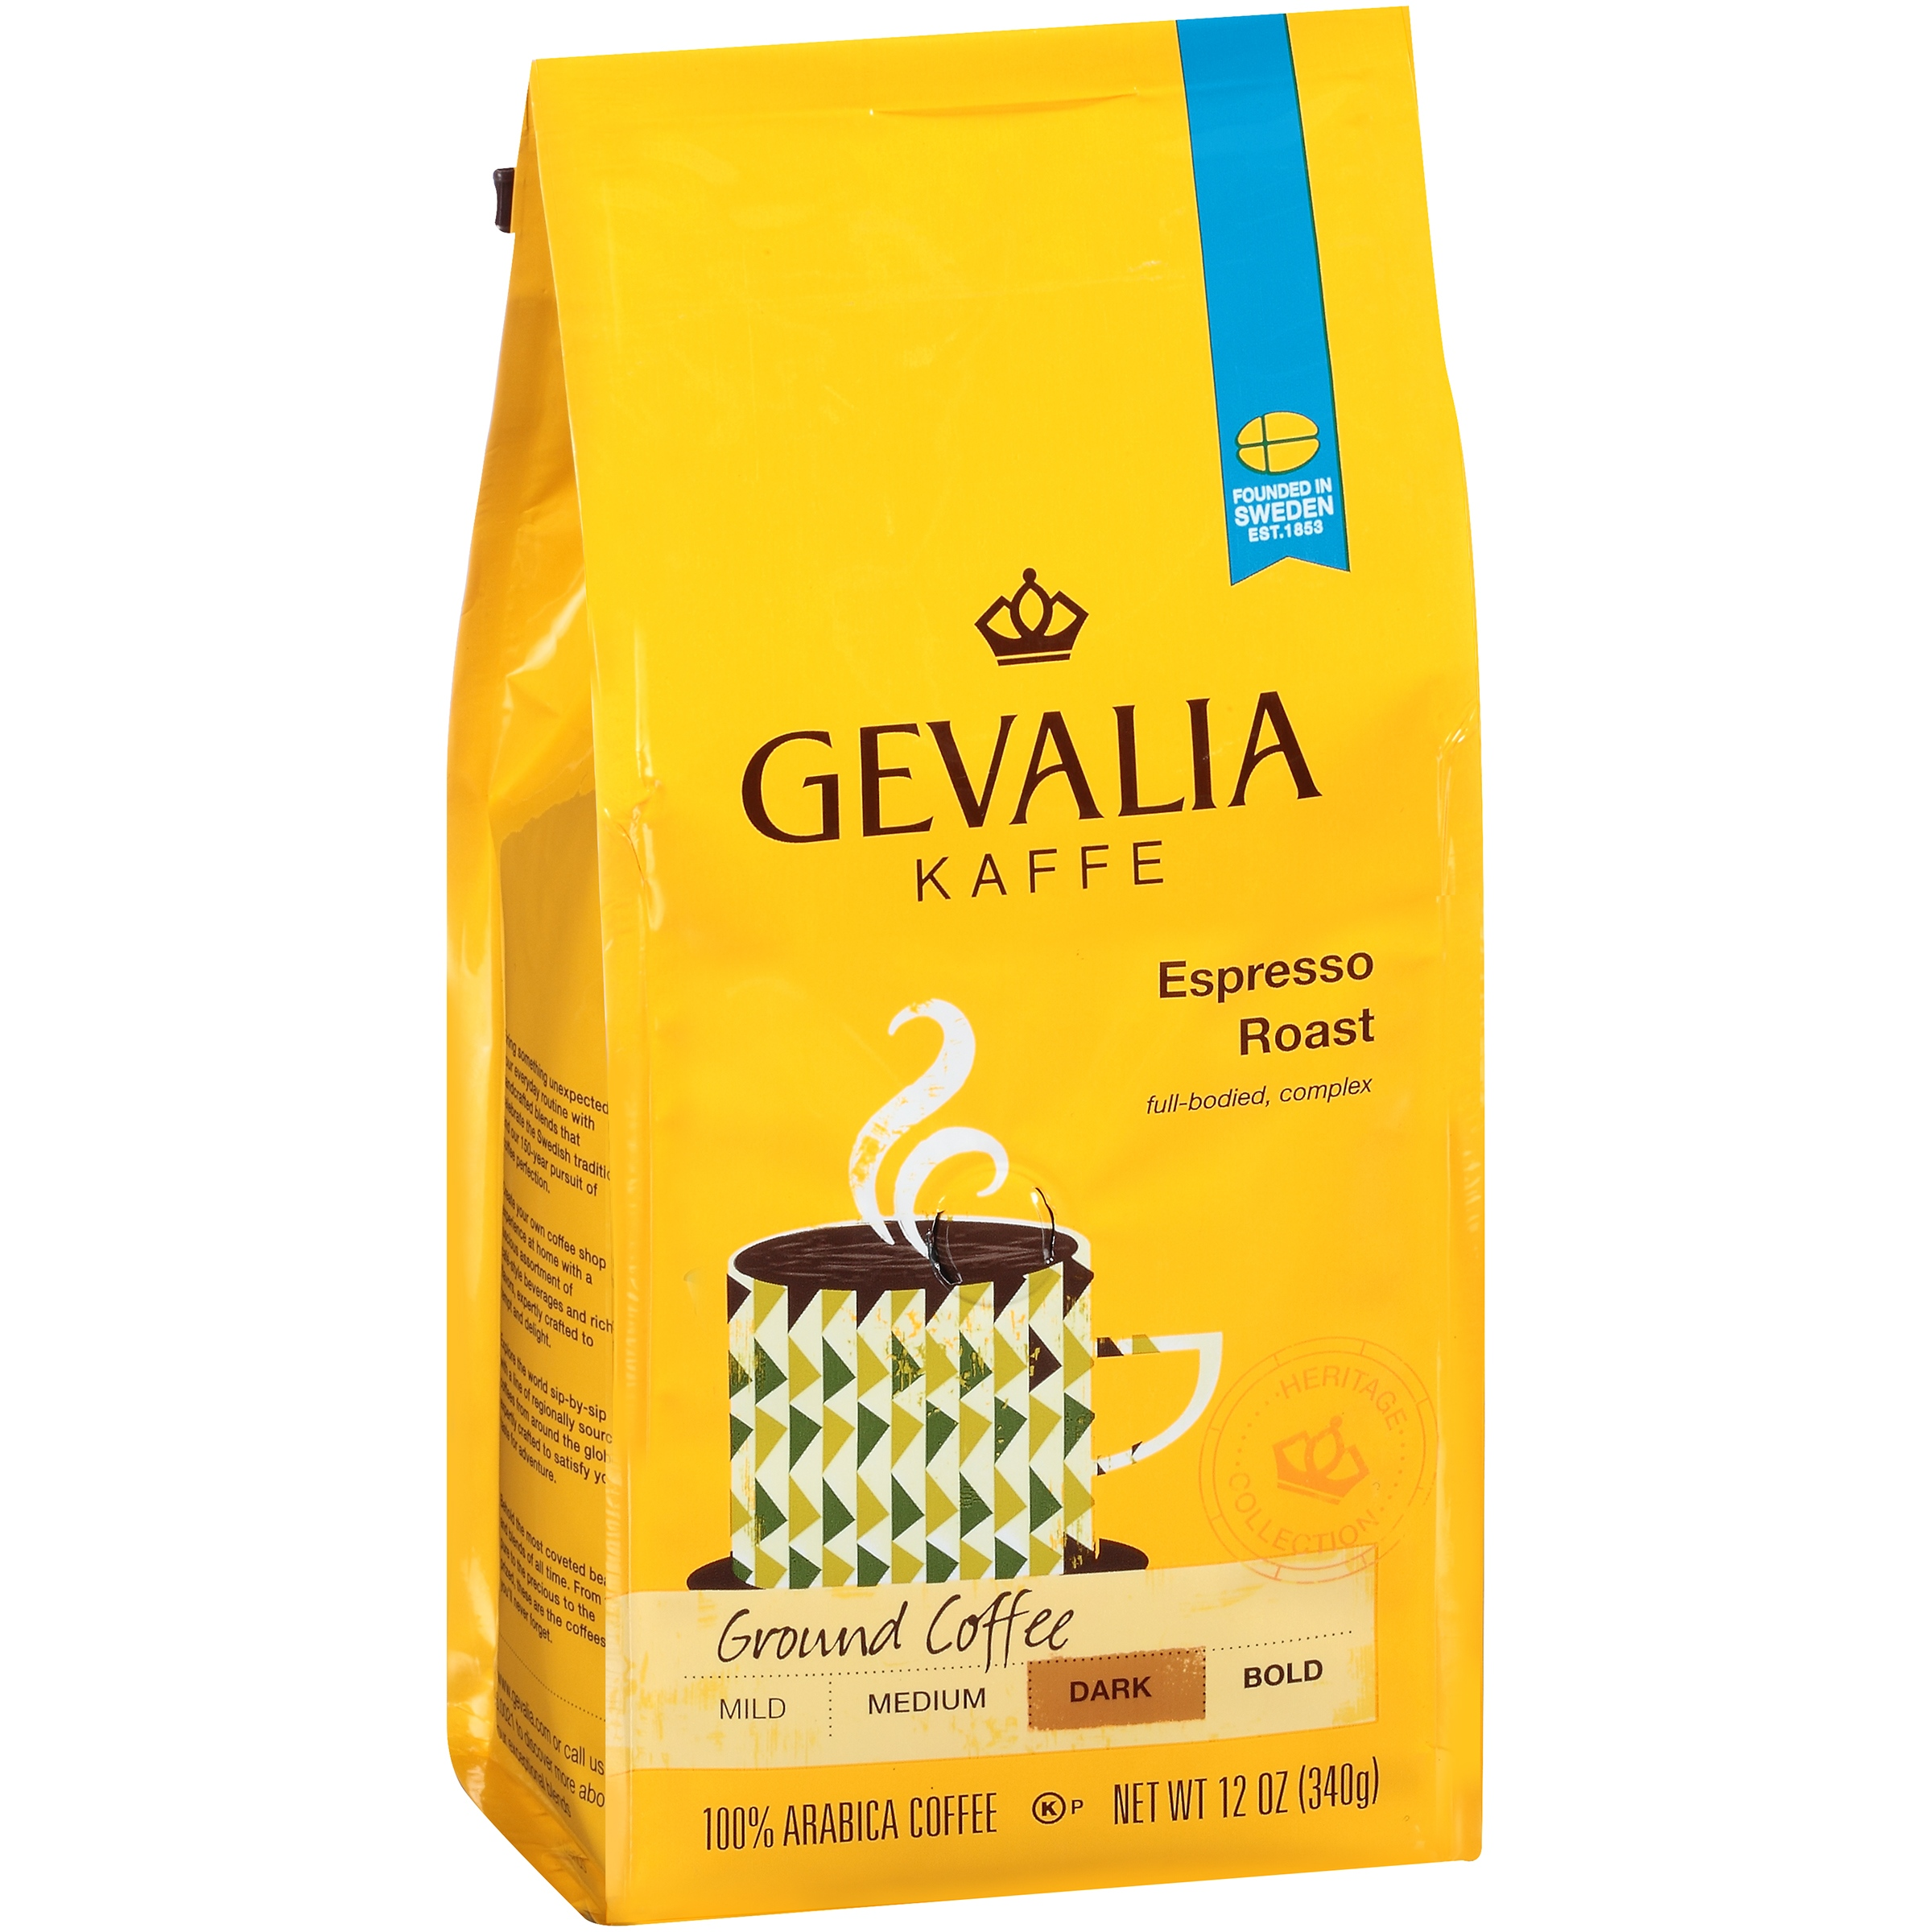 Gevalia Kaffe Espresso Dark Roast Ground Coffee, 12 OZ (340g)